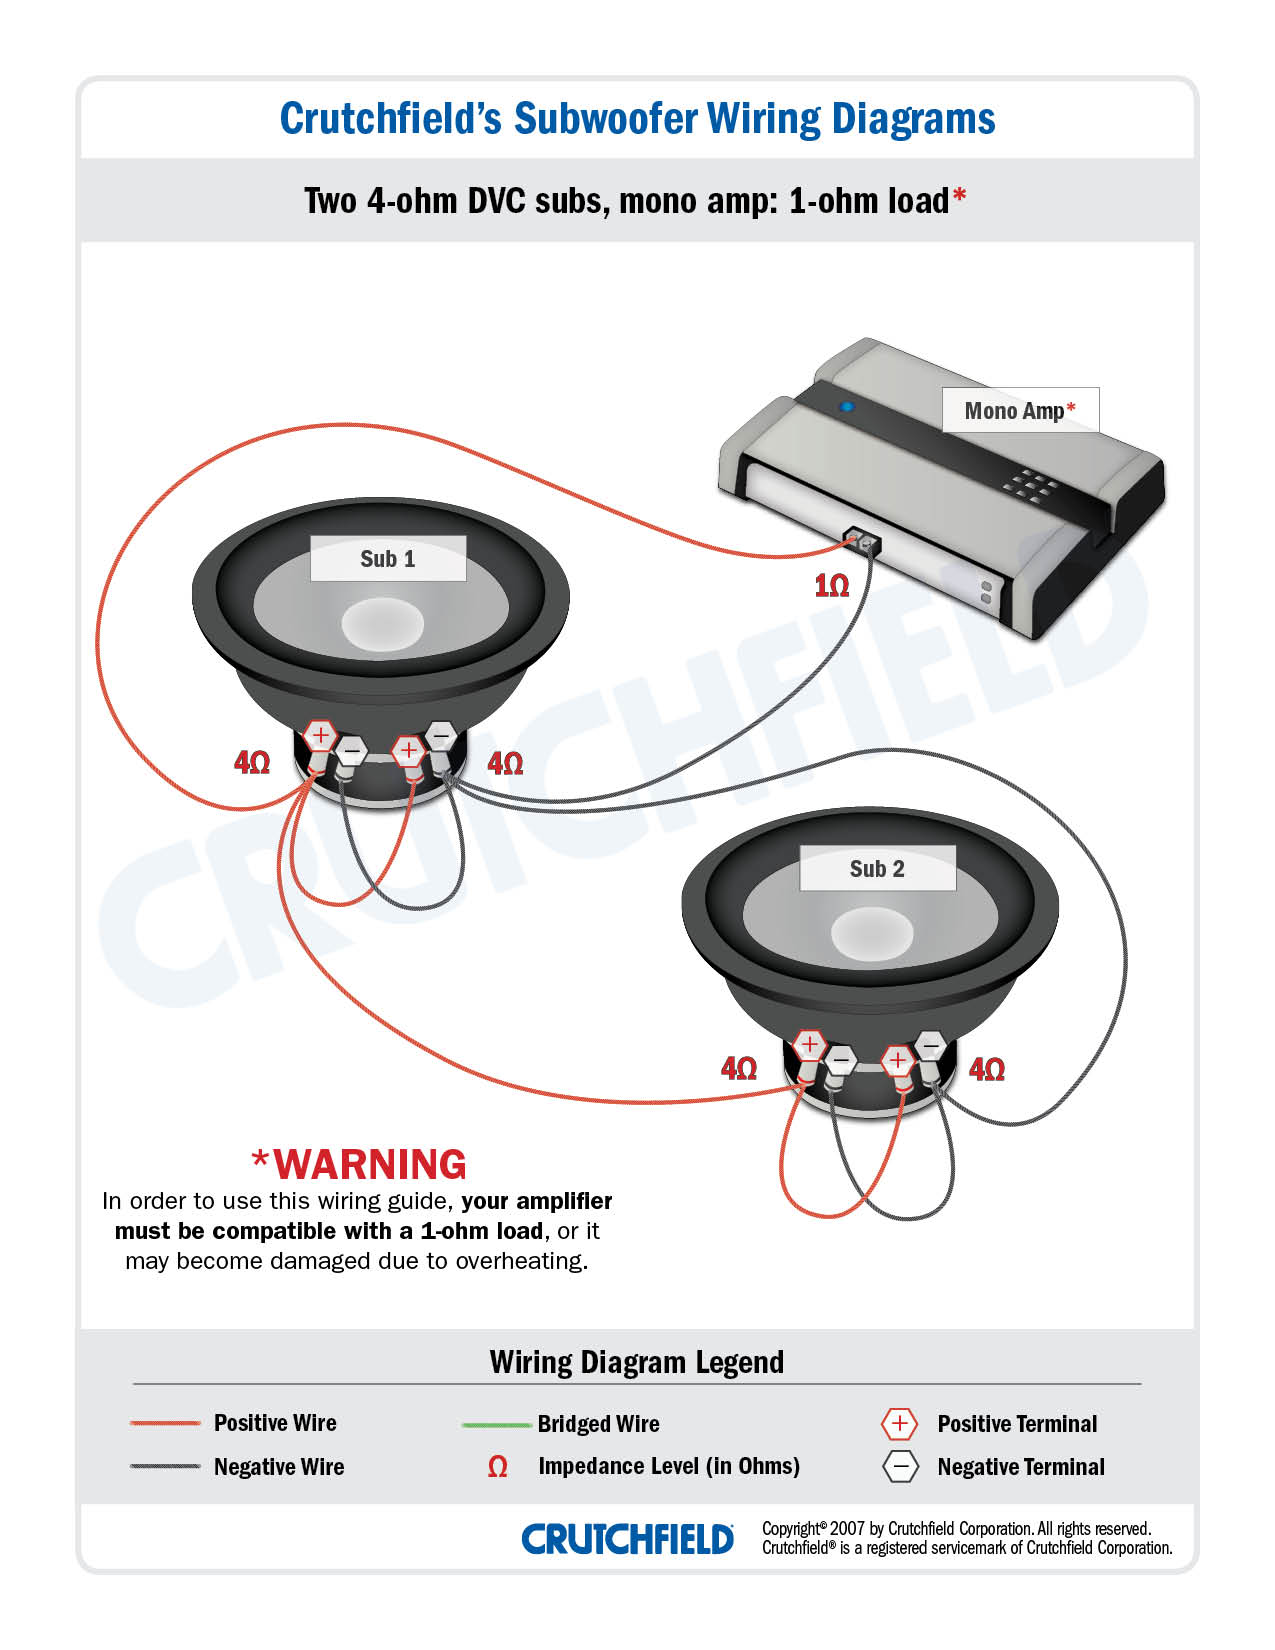 Subwoofer Wiring Diagrams How To Wire Your Subs Diagram Two In Case The 4 Ohm Scheme Is Only Safe Way Connect That Gear Together